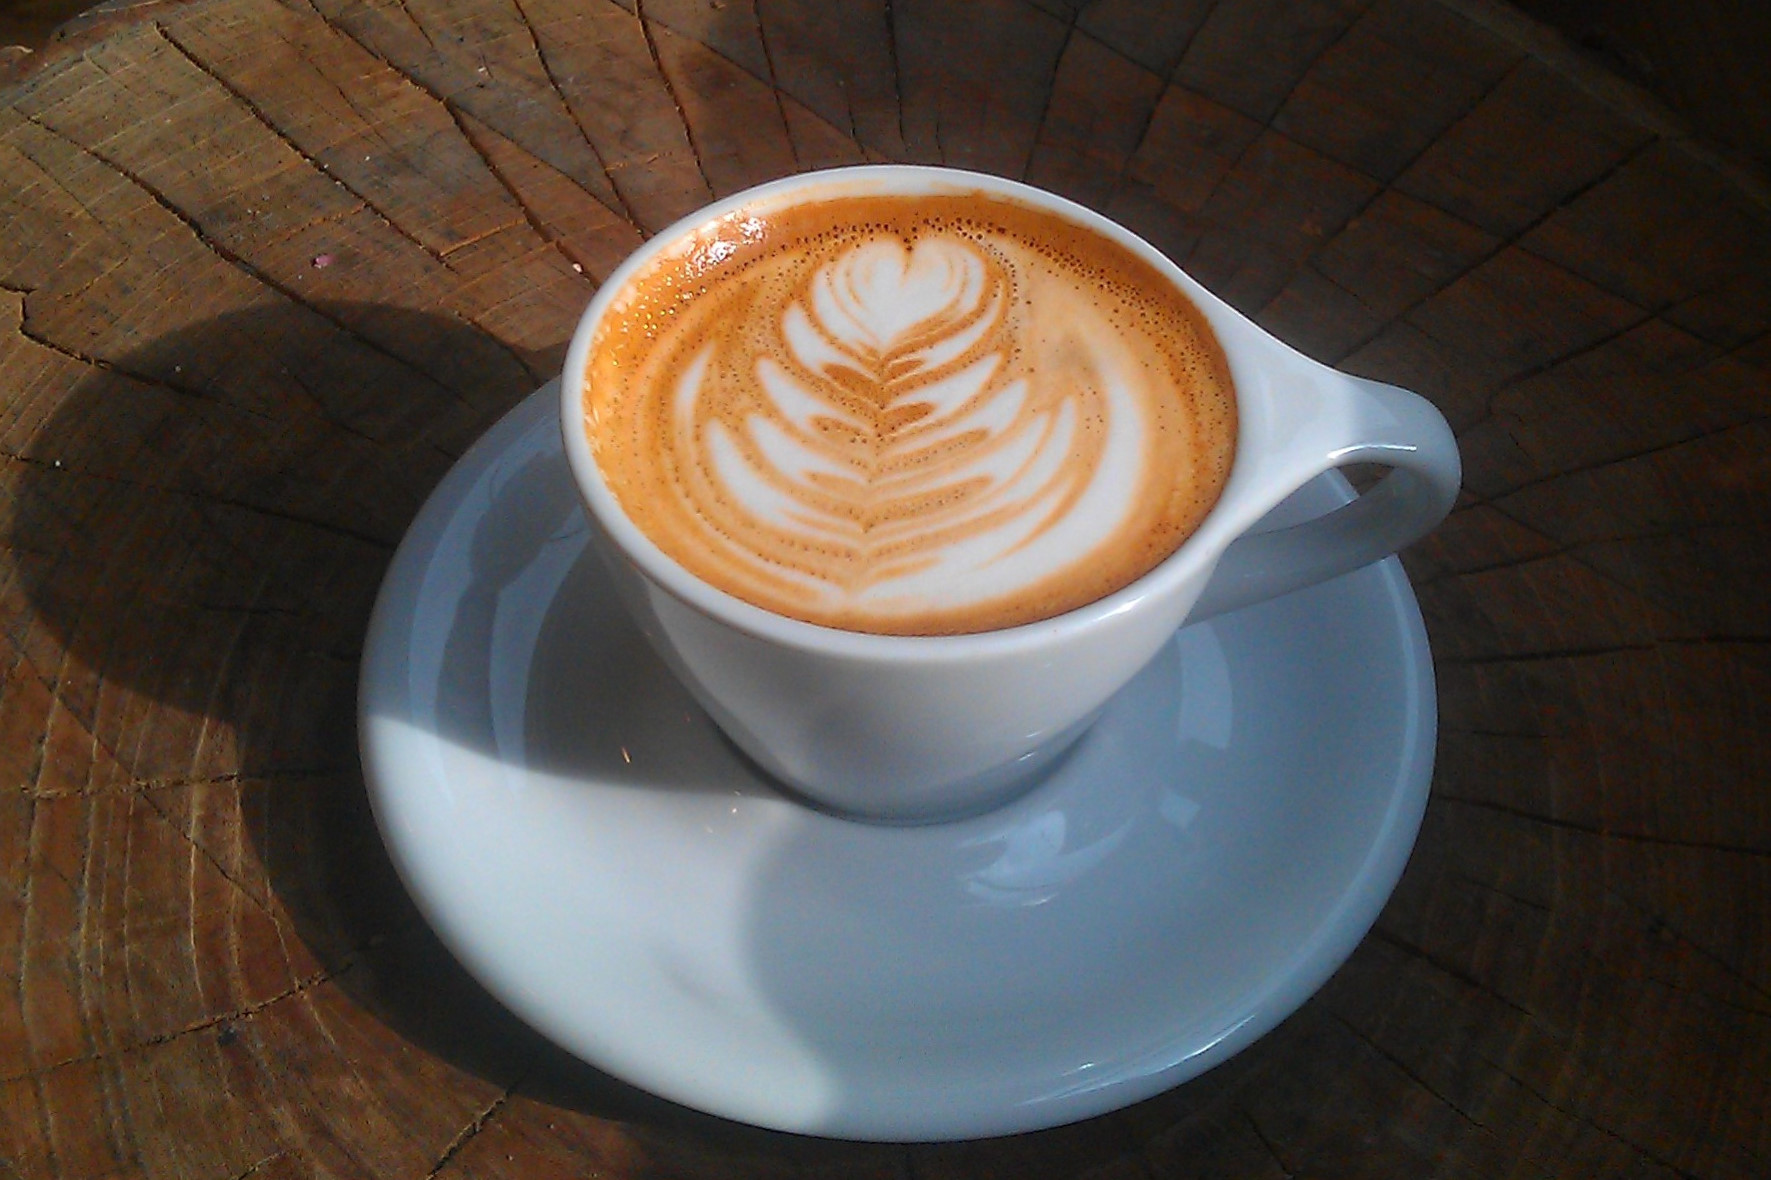 A cappuccino in a classic white cup, sitting on a tree-stump table in the window, half in shadow from the sunlight.